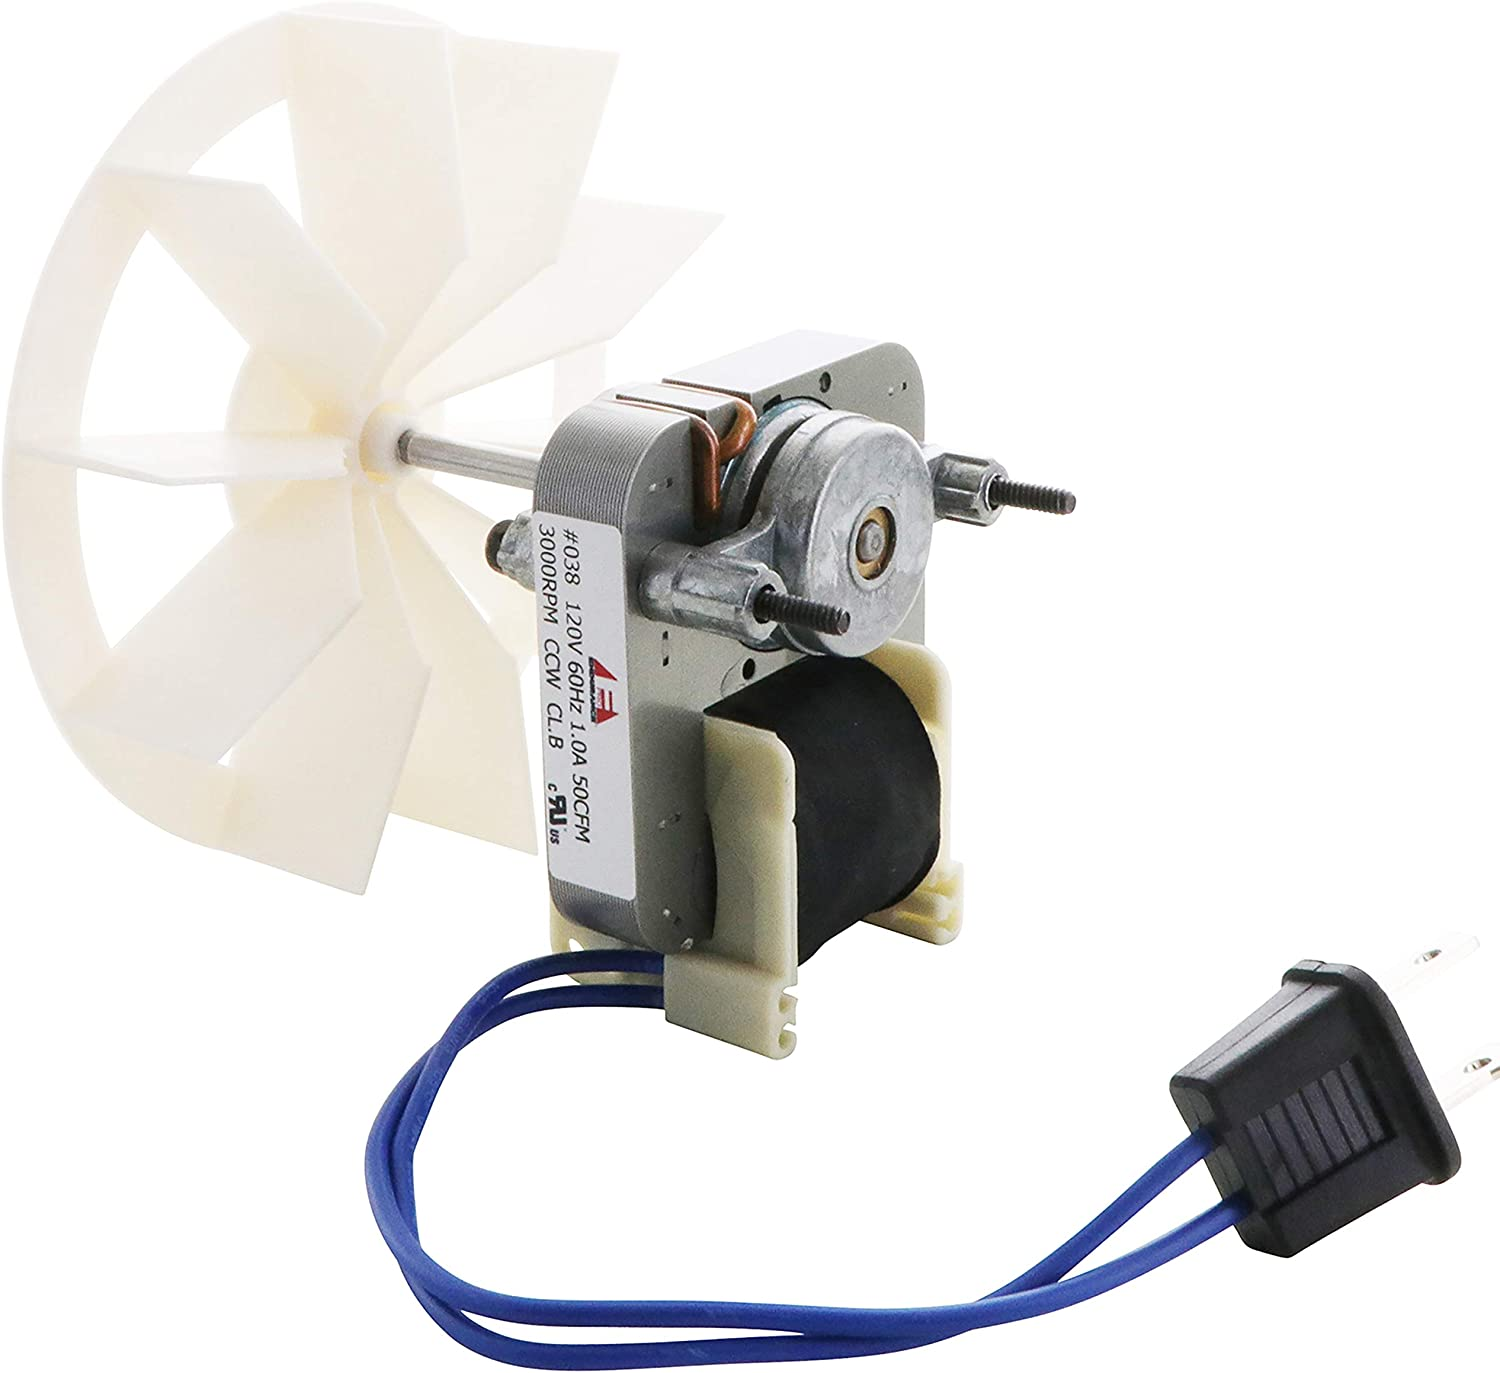 Endurance Pro Bathroom Vent Fan Motor and Blower Wheel Replacement Electric Motors Kit Compatible with Nutone Broan 50CFM 120V